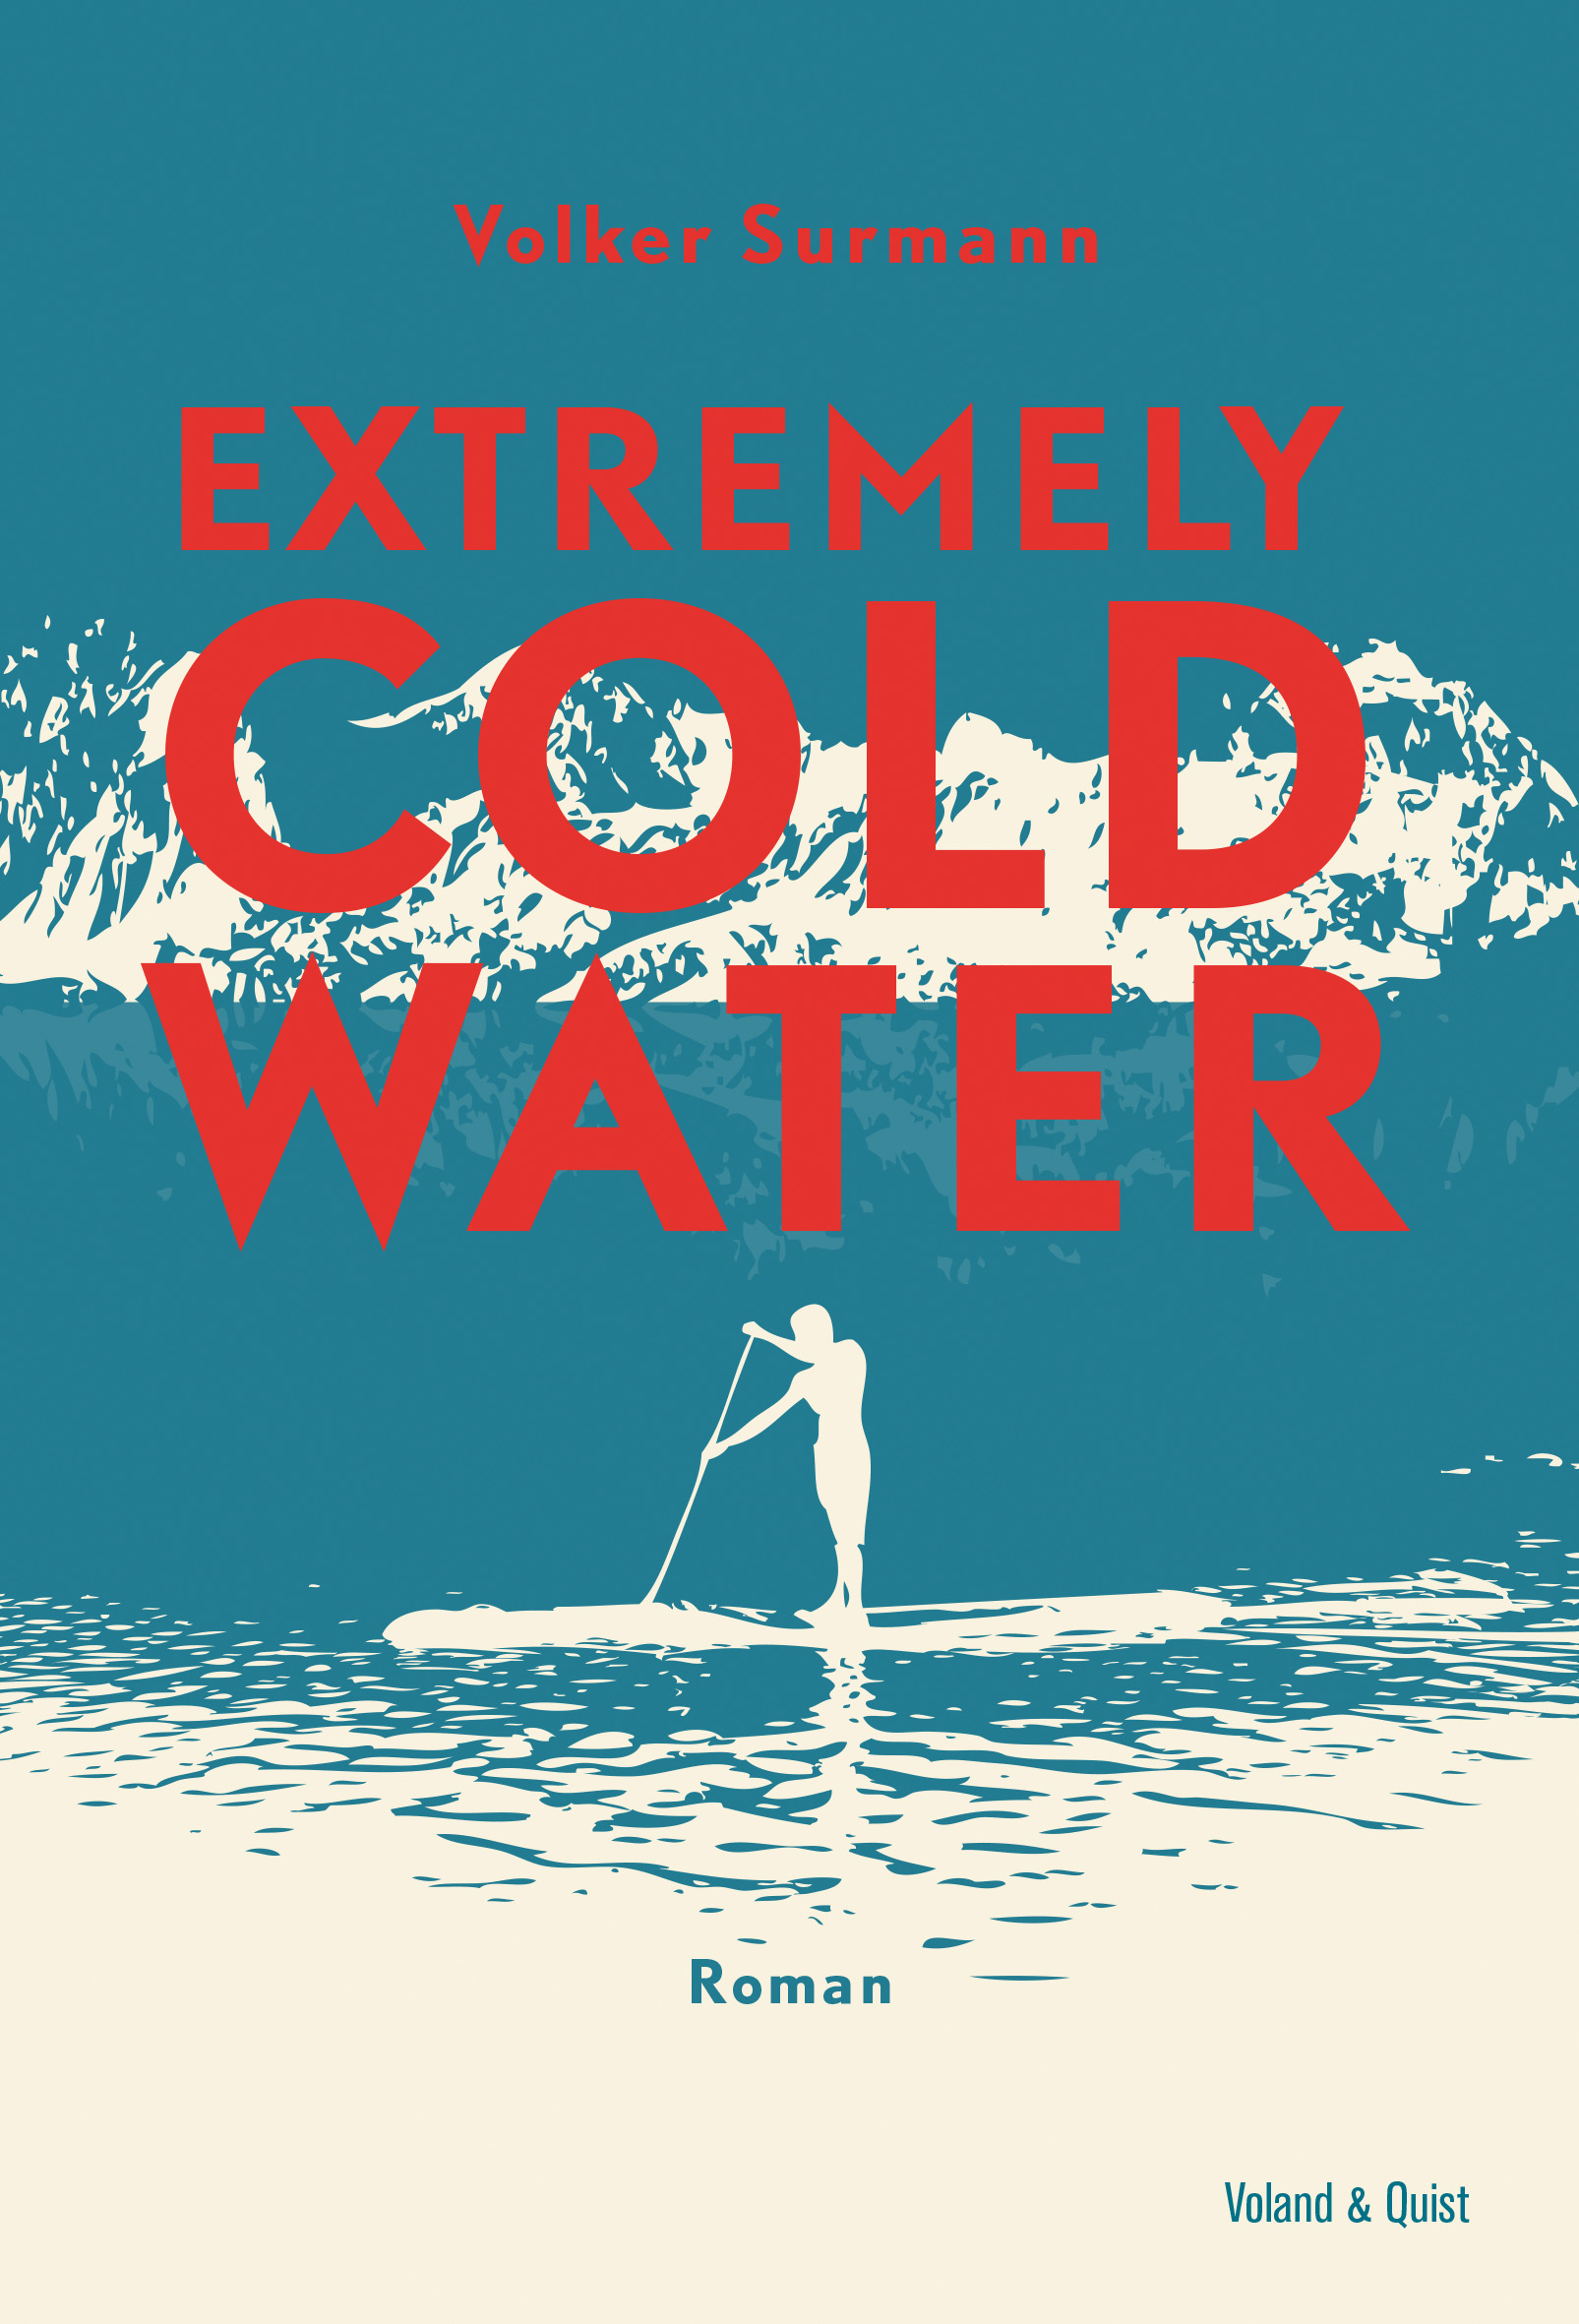 Volker-Surmann-Extremely-Cold-Water9783863910884